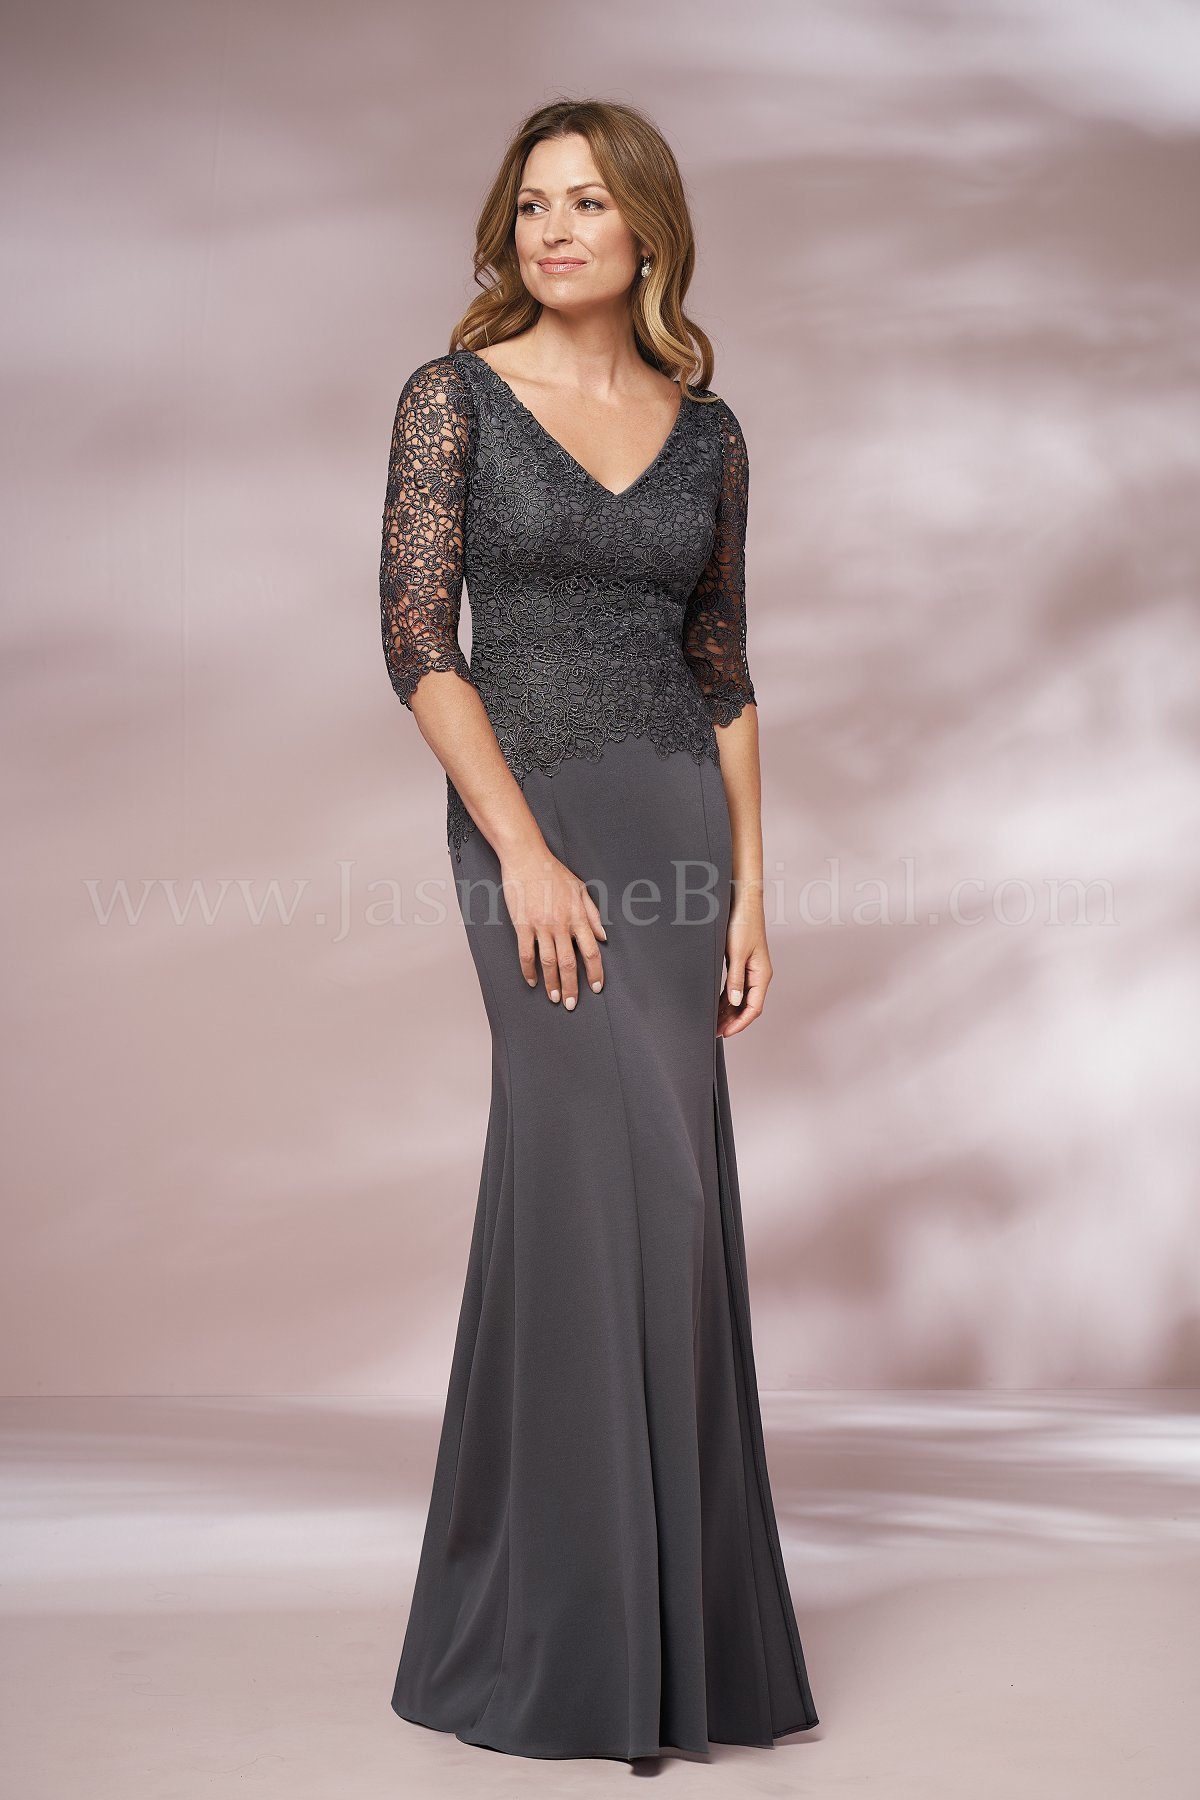 mother-of-the-bride-dresses-J205010-F